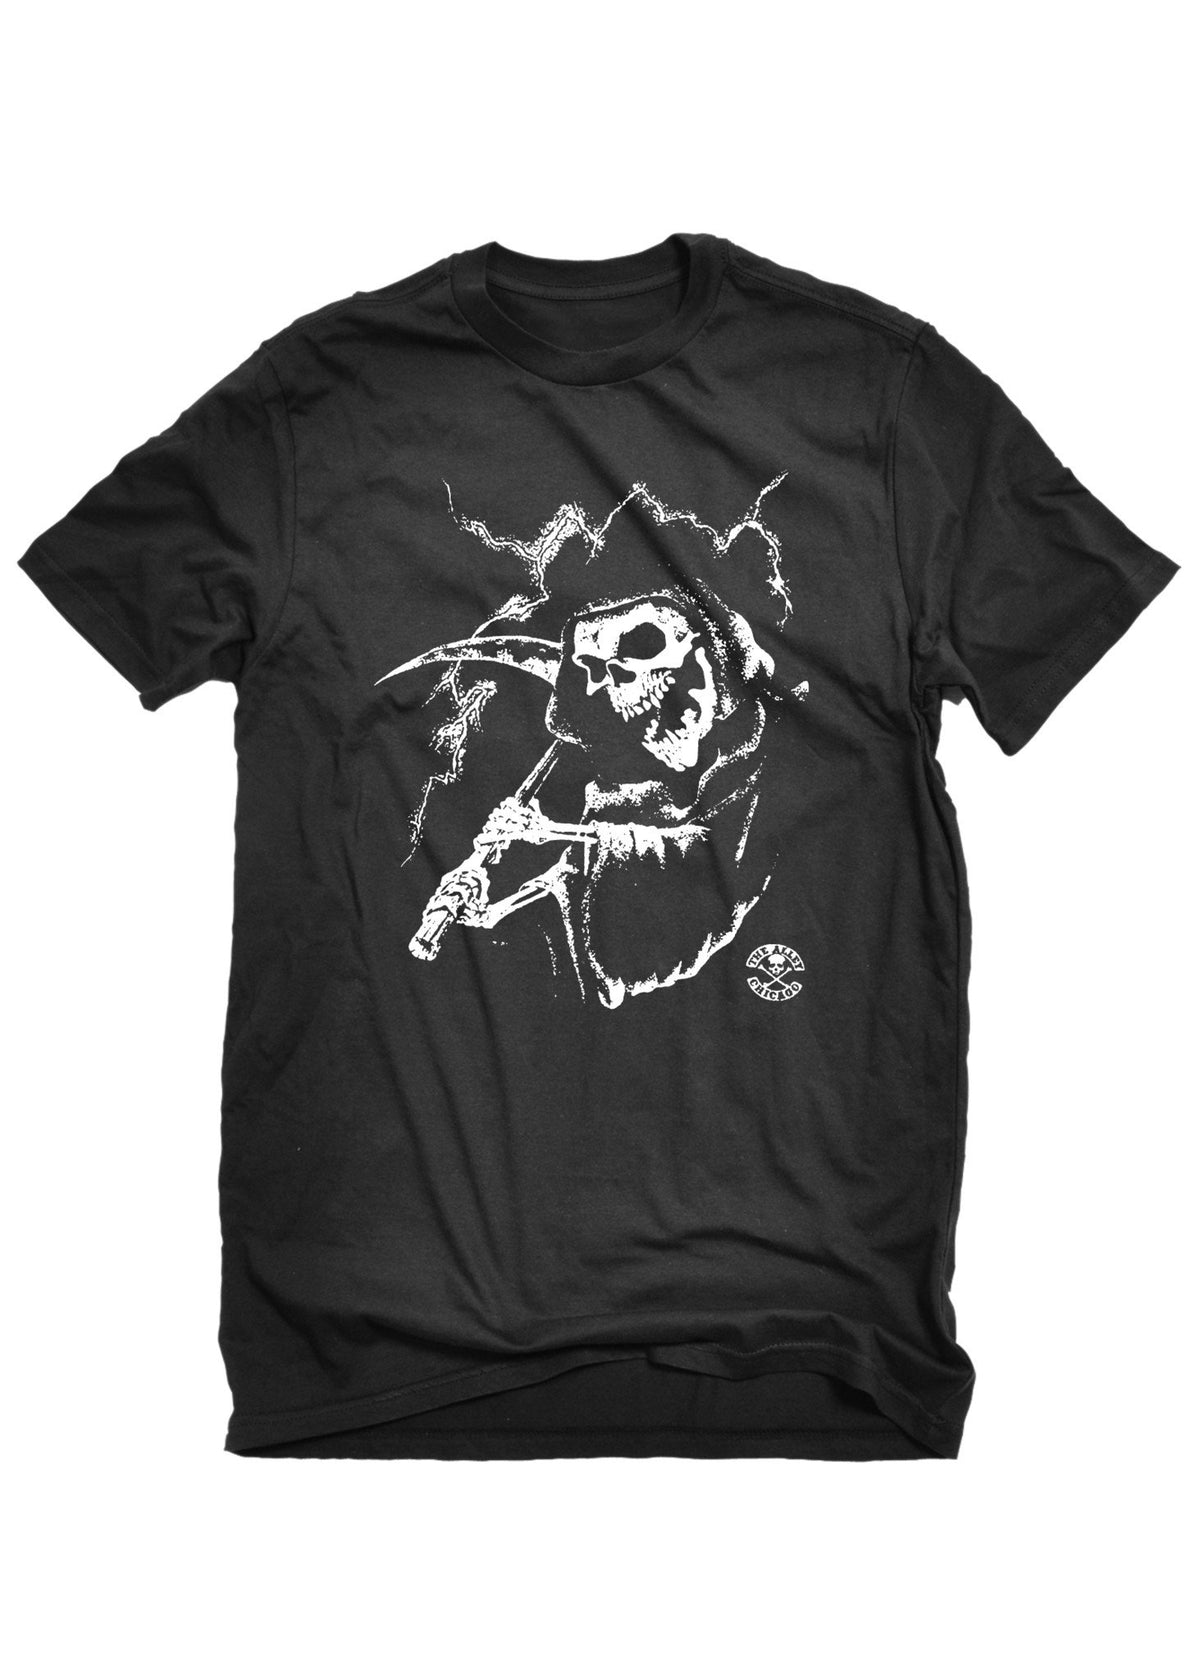 T-Shirts - The Alley Chicago Grim Reaper Lightning T-shirt